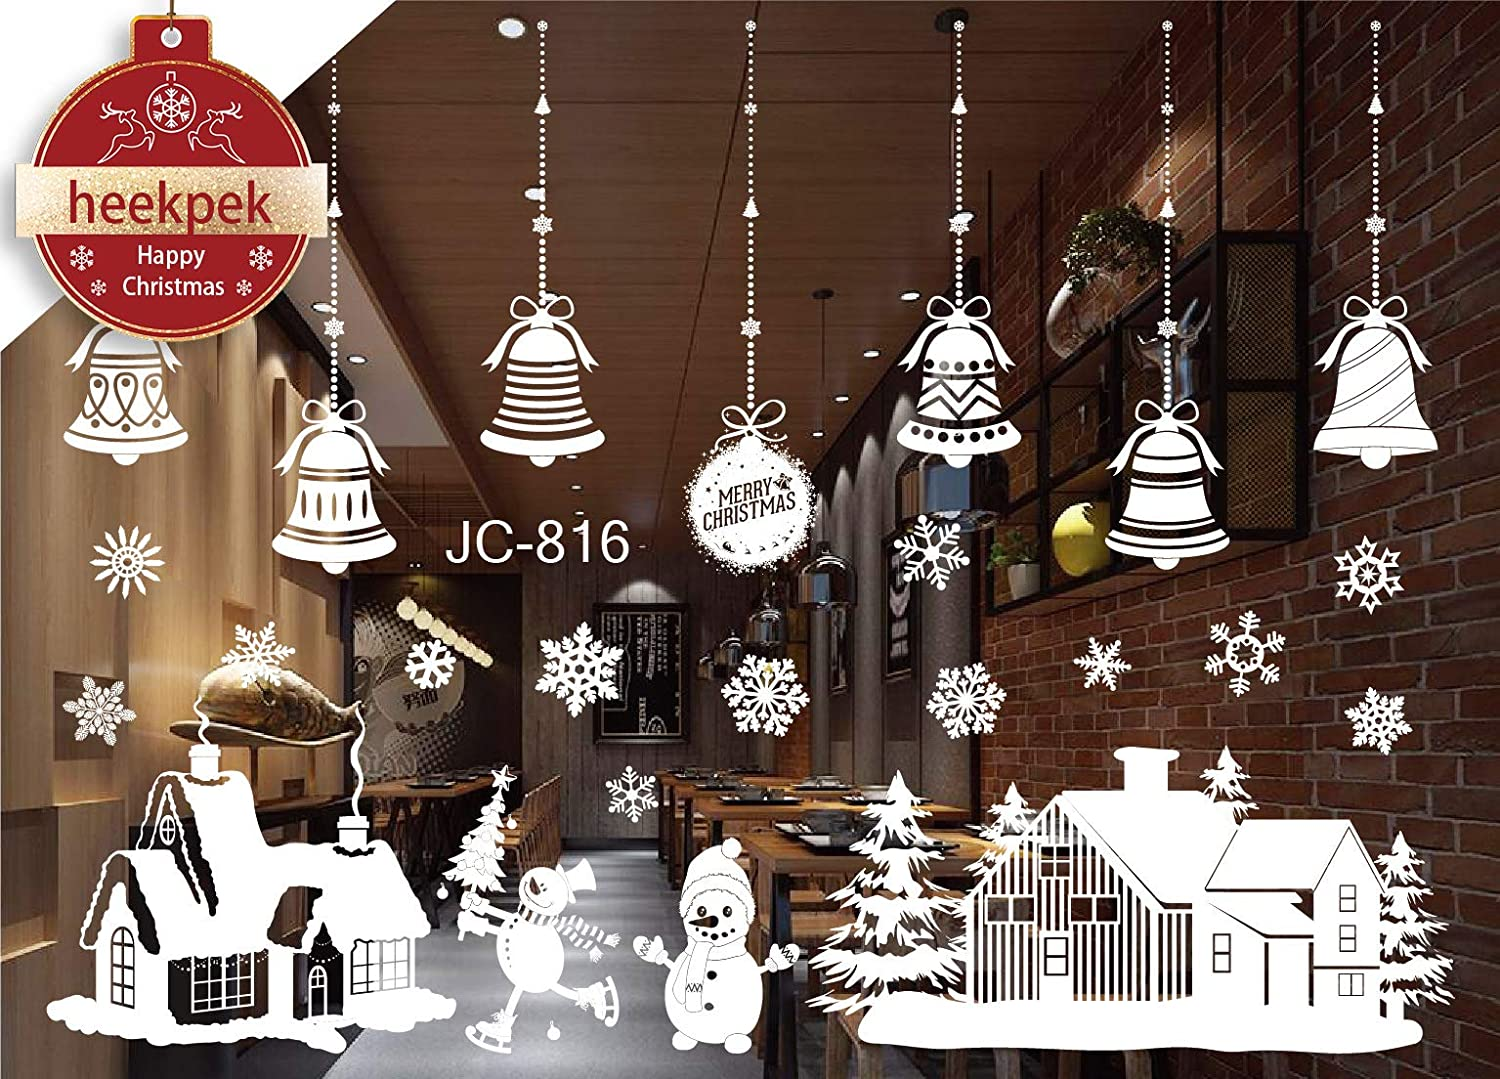 Christmas Santa Claus Snowman Reindee Window Wall Stickers Removable Mural for Home Decoration 50 * 70cm (A) Heekpek®